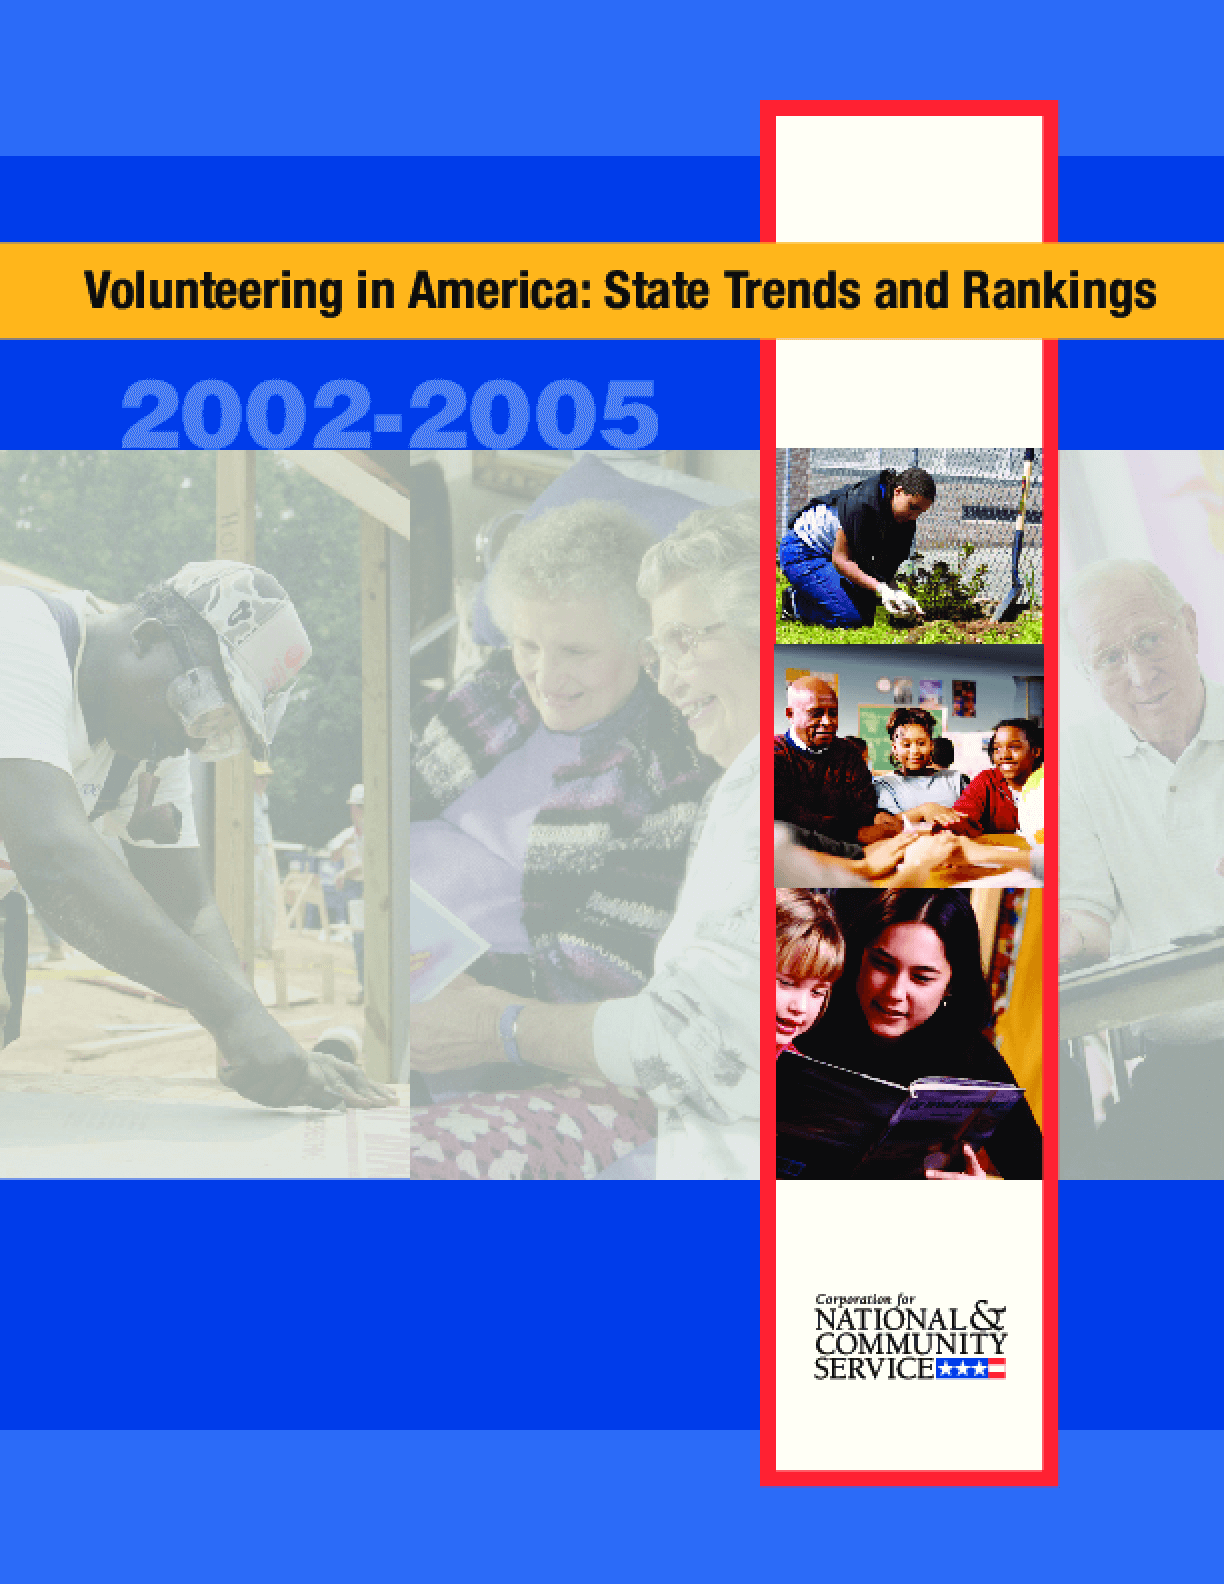 Volunteering in America: State Trends and Rankings 2002-2005